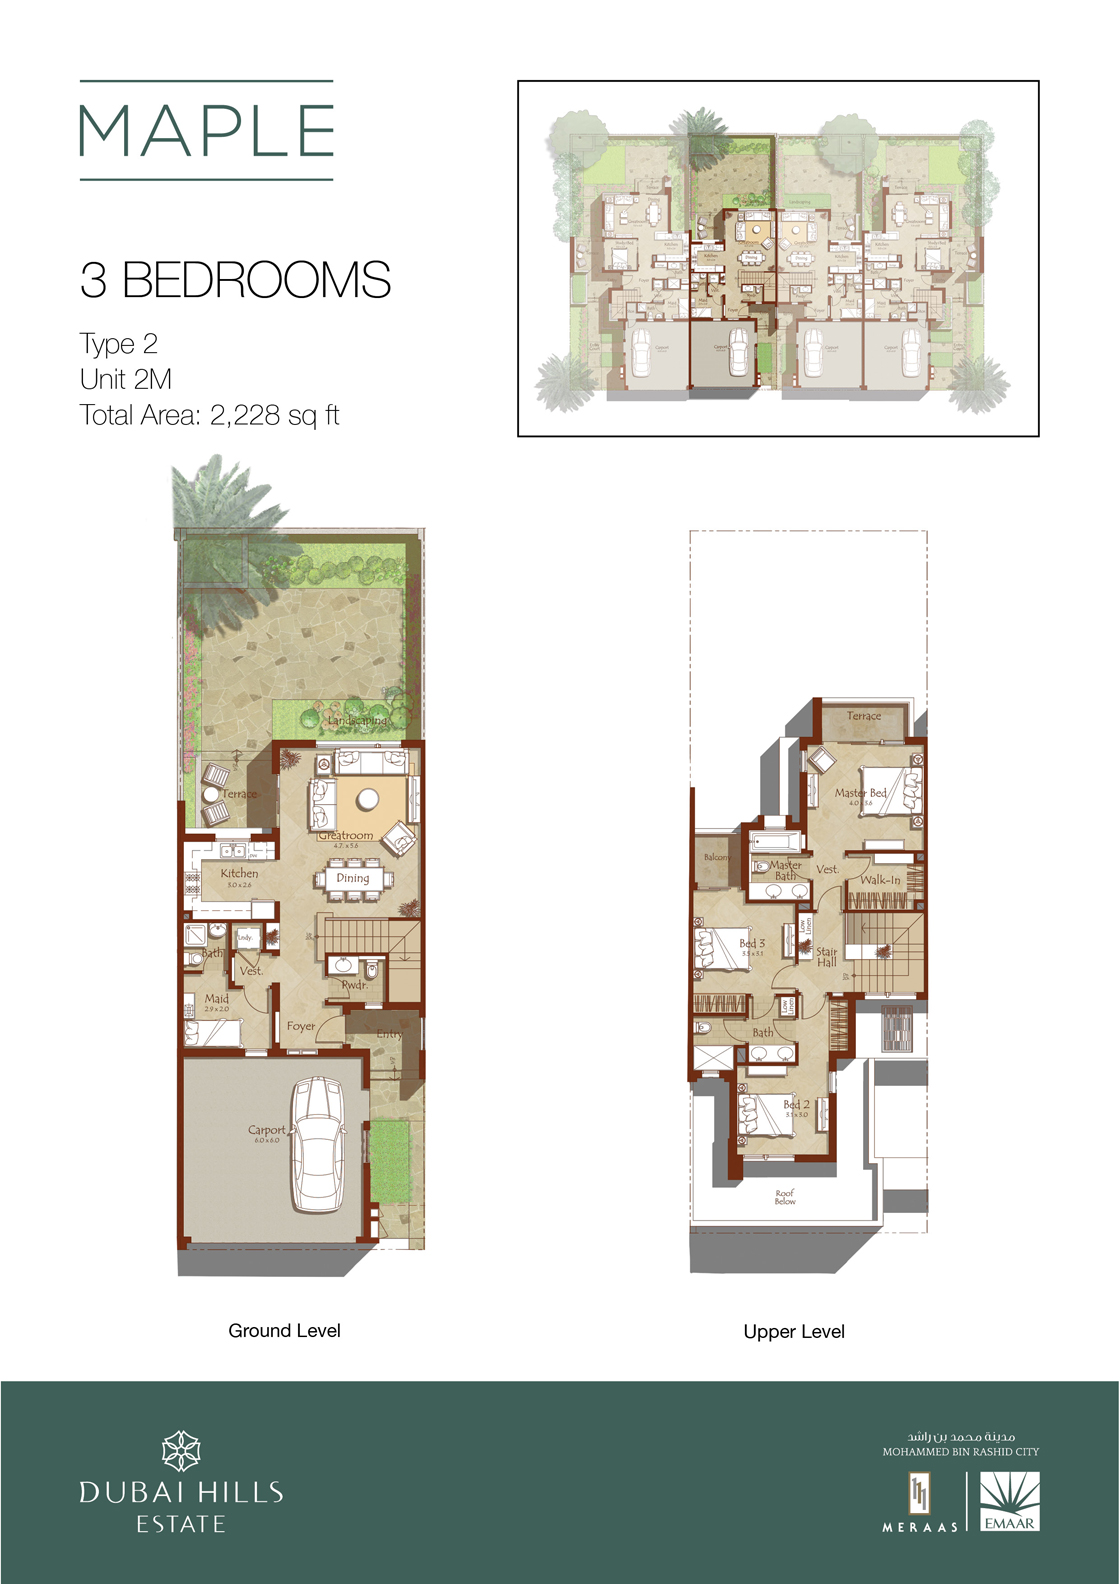 Maple-floorplans-3 bedroom-1120w tcm130-77819